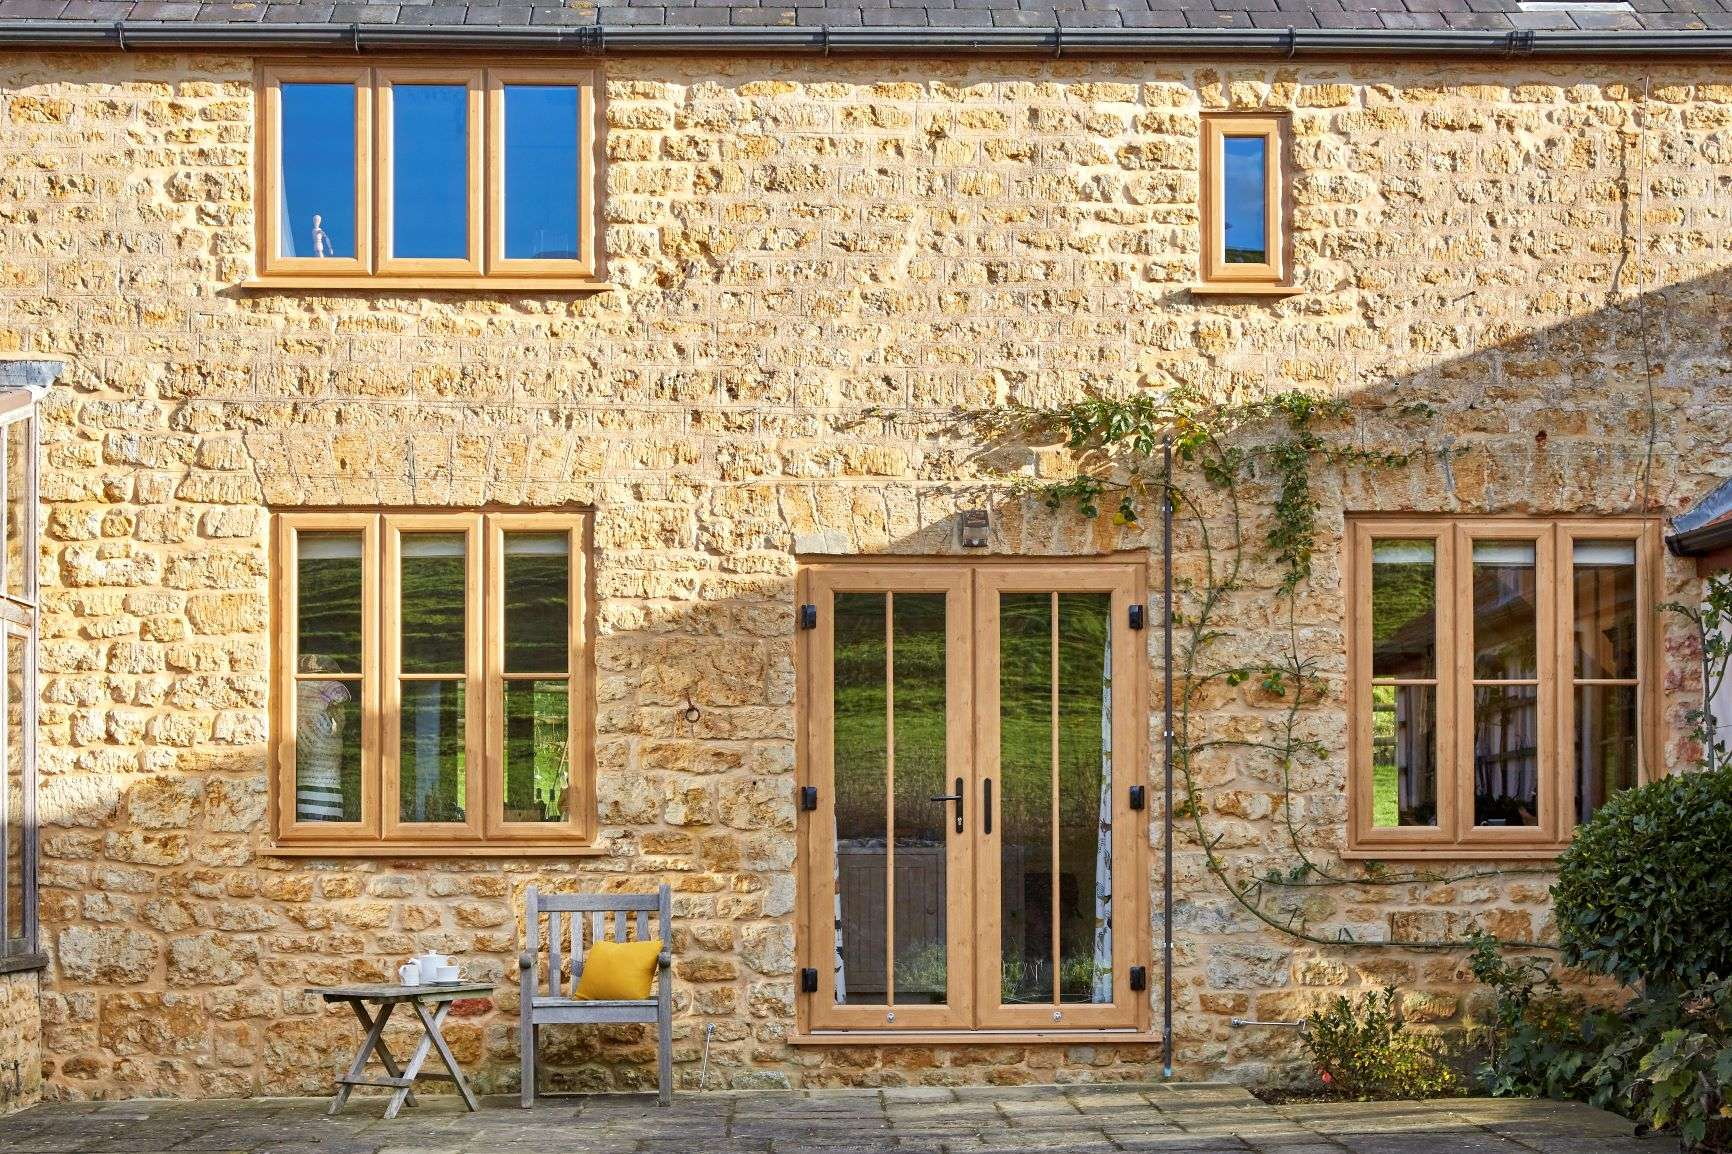 VEKA woodgrain French Doors on a traditional stone property